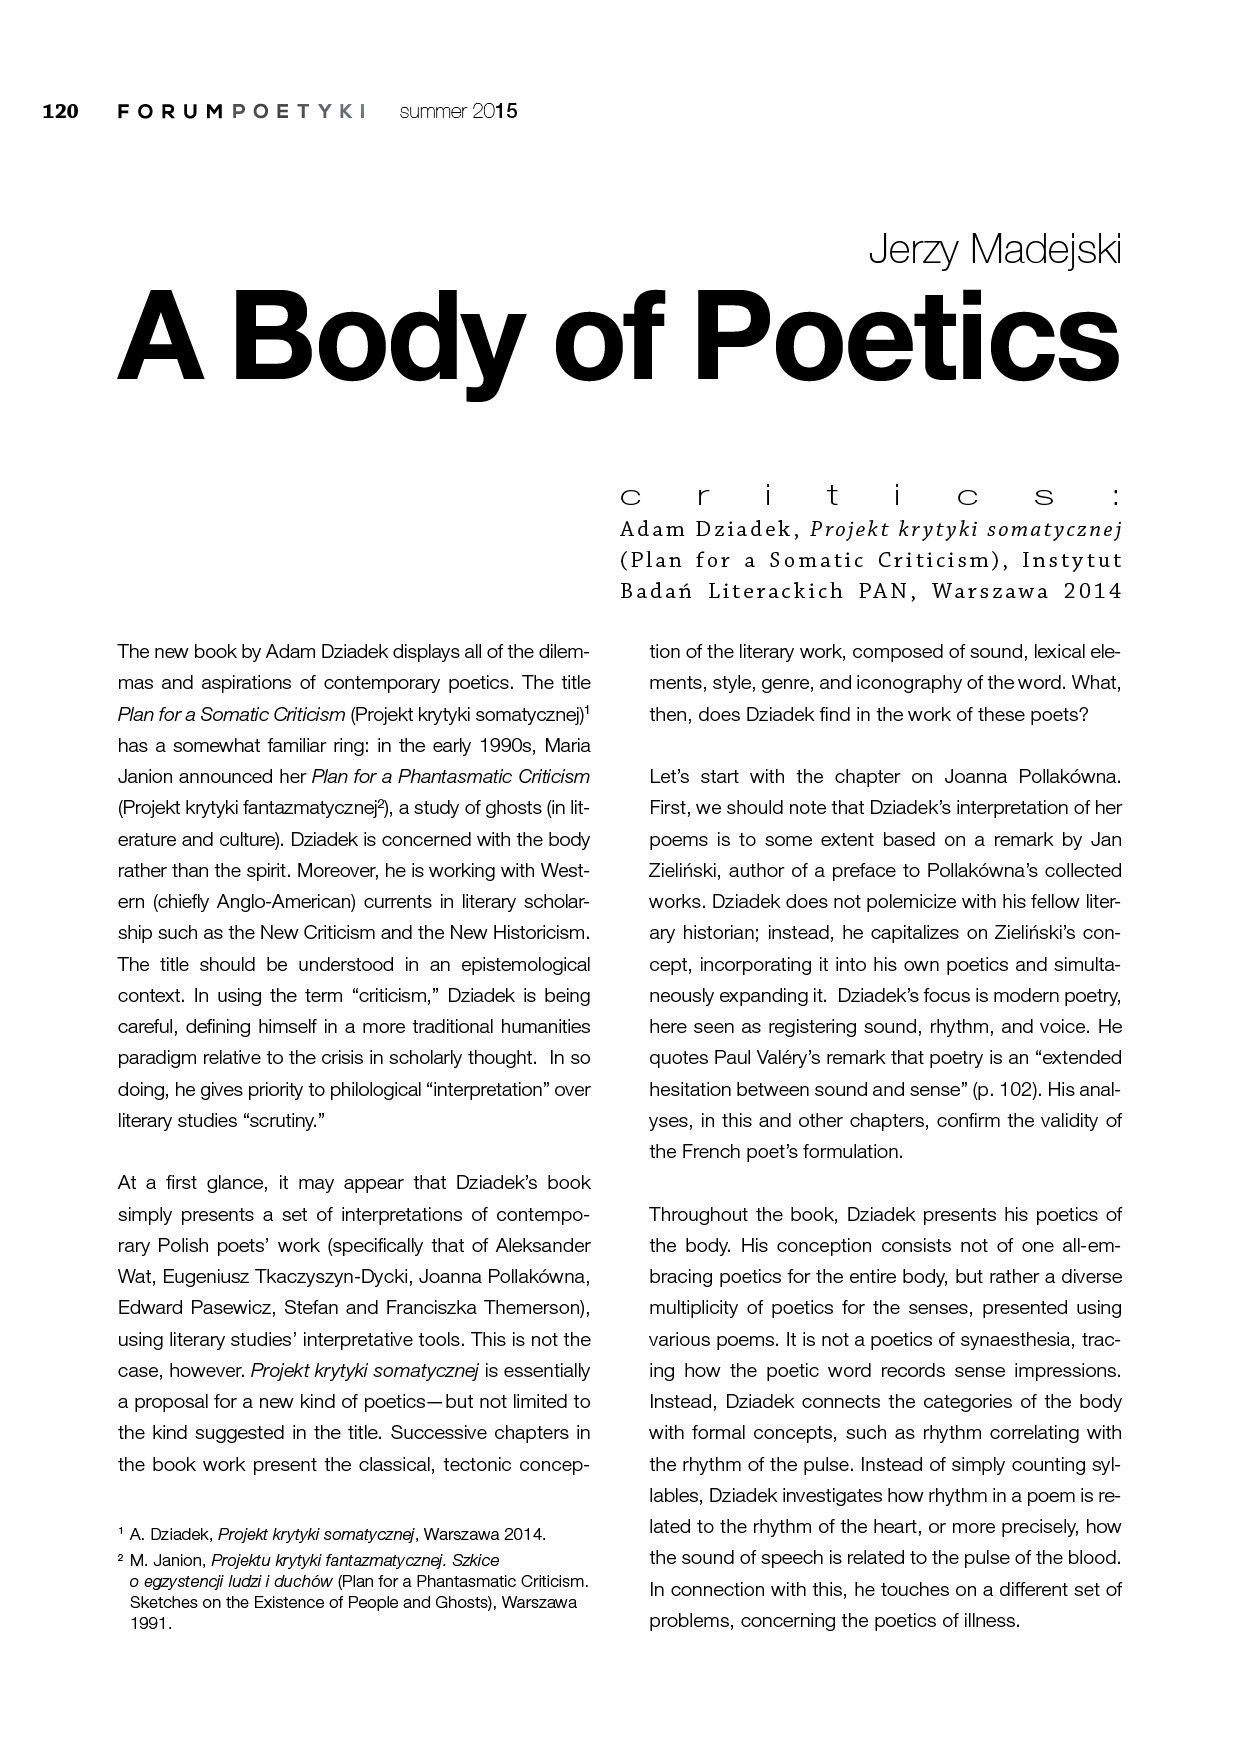 A Body of Poetics